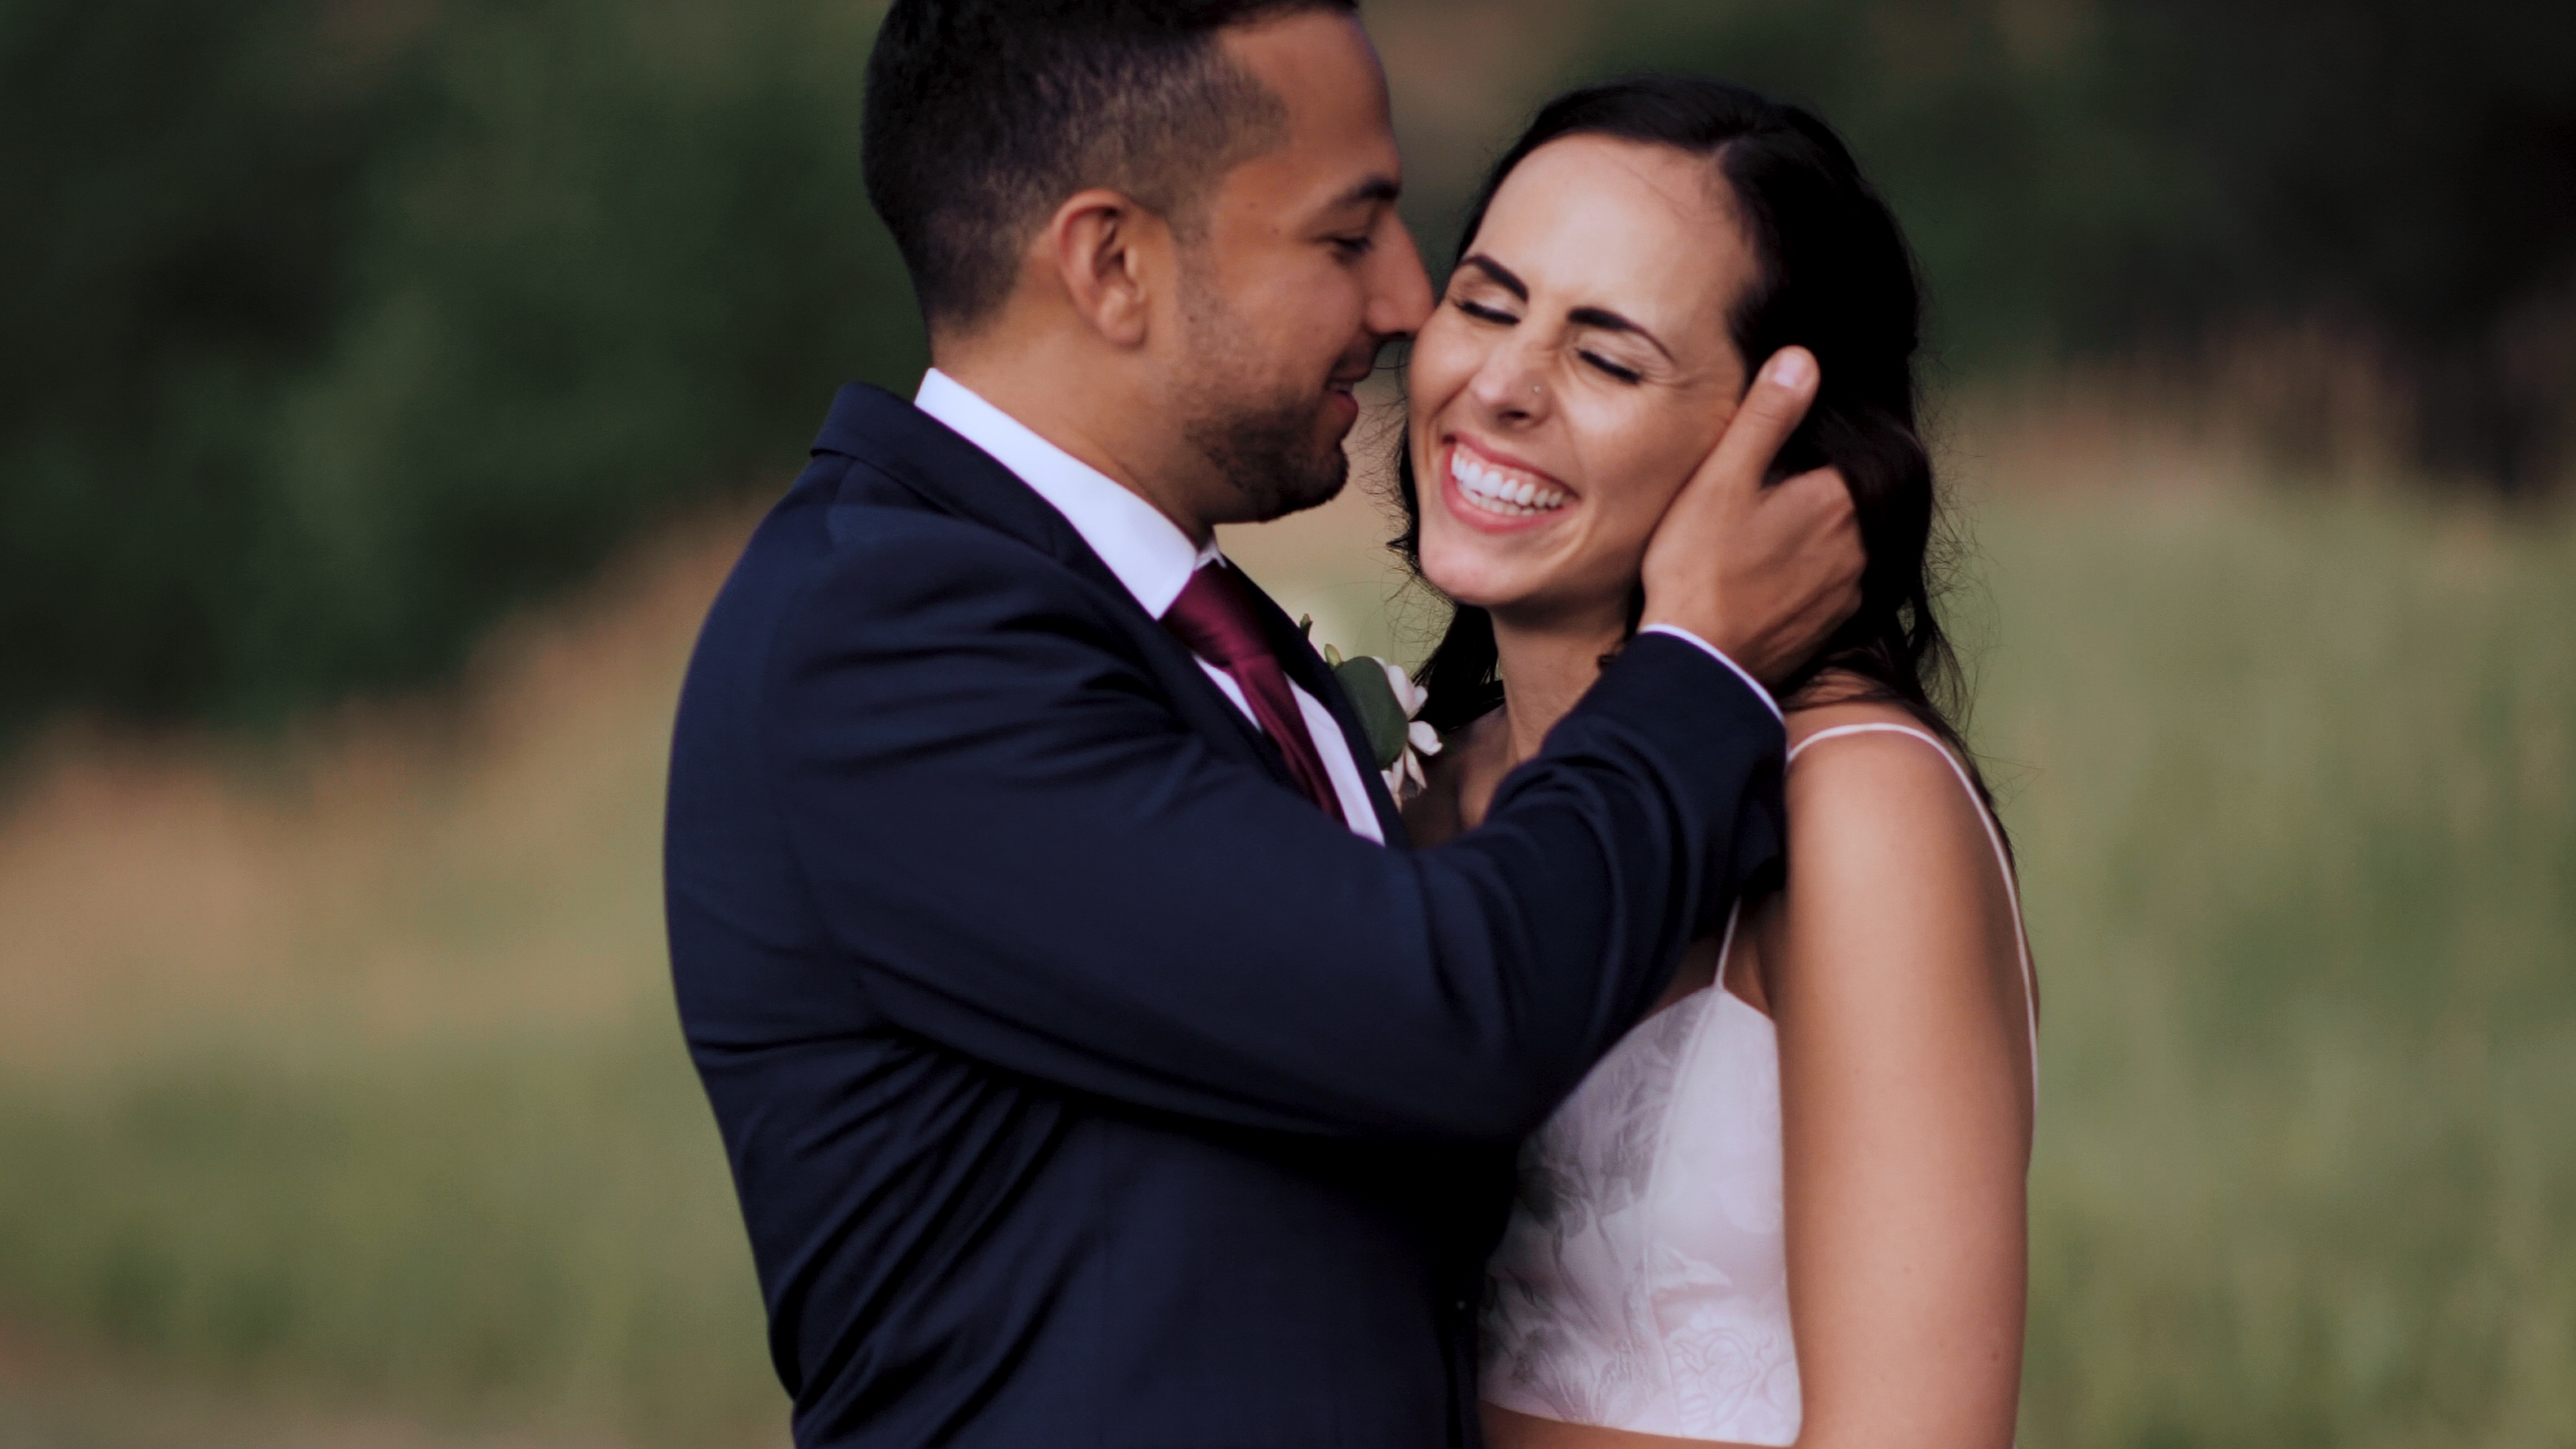 Laura + Shayan | Morrison, Colorado | The Manor House